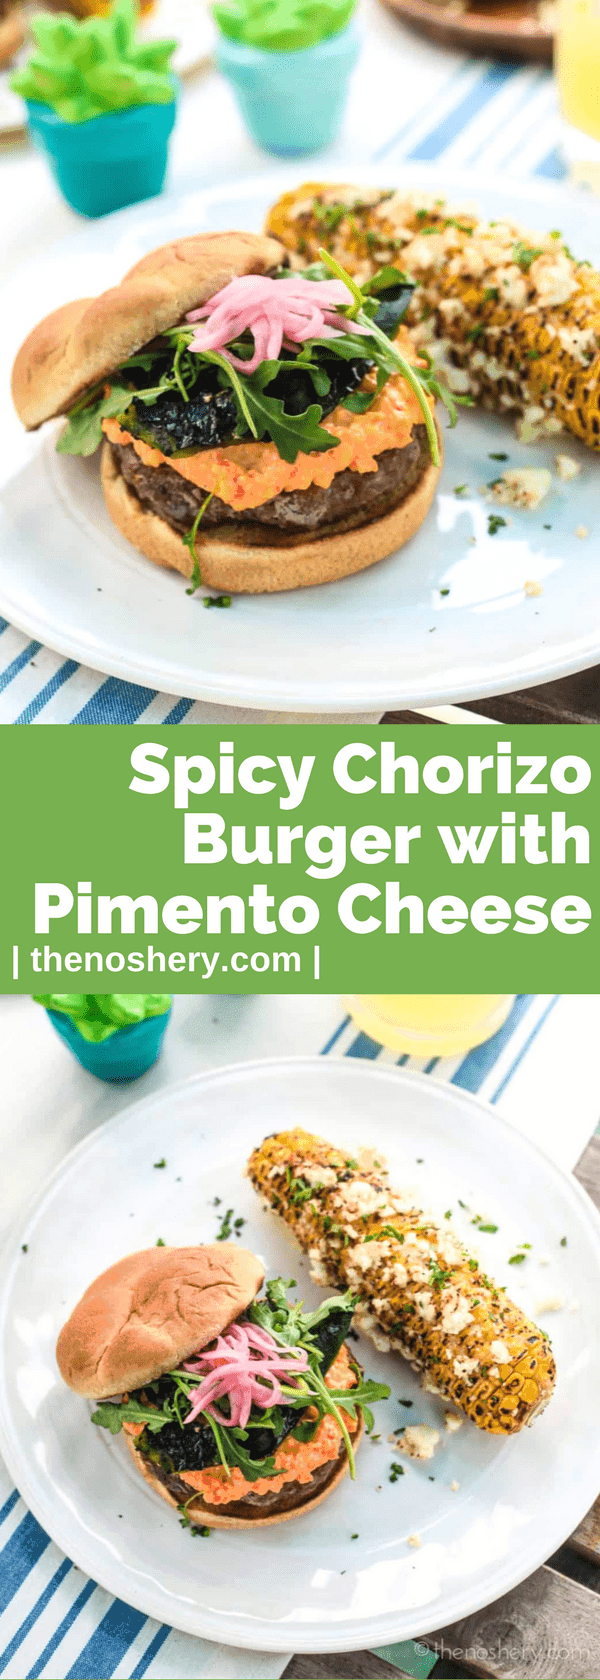 Spicy Chorizo Burger with Pimento Cheese | If you like your burger spicy and juicy I present you with your new favorite burger! The patty is made with a mixture of beef and pork chorizo. | The Noshery